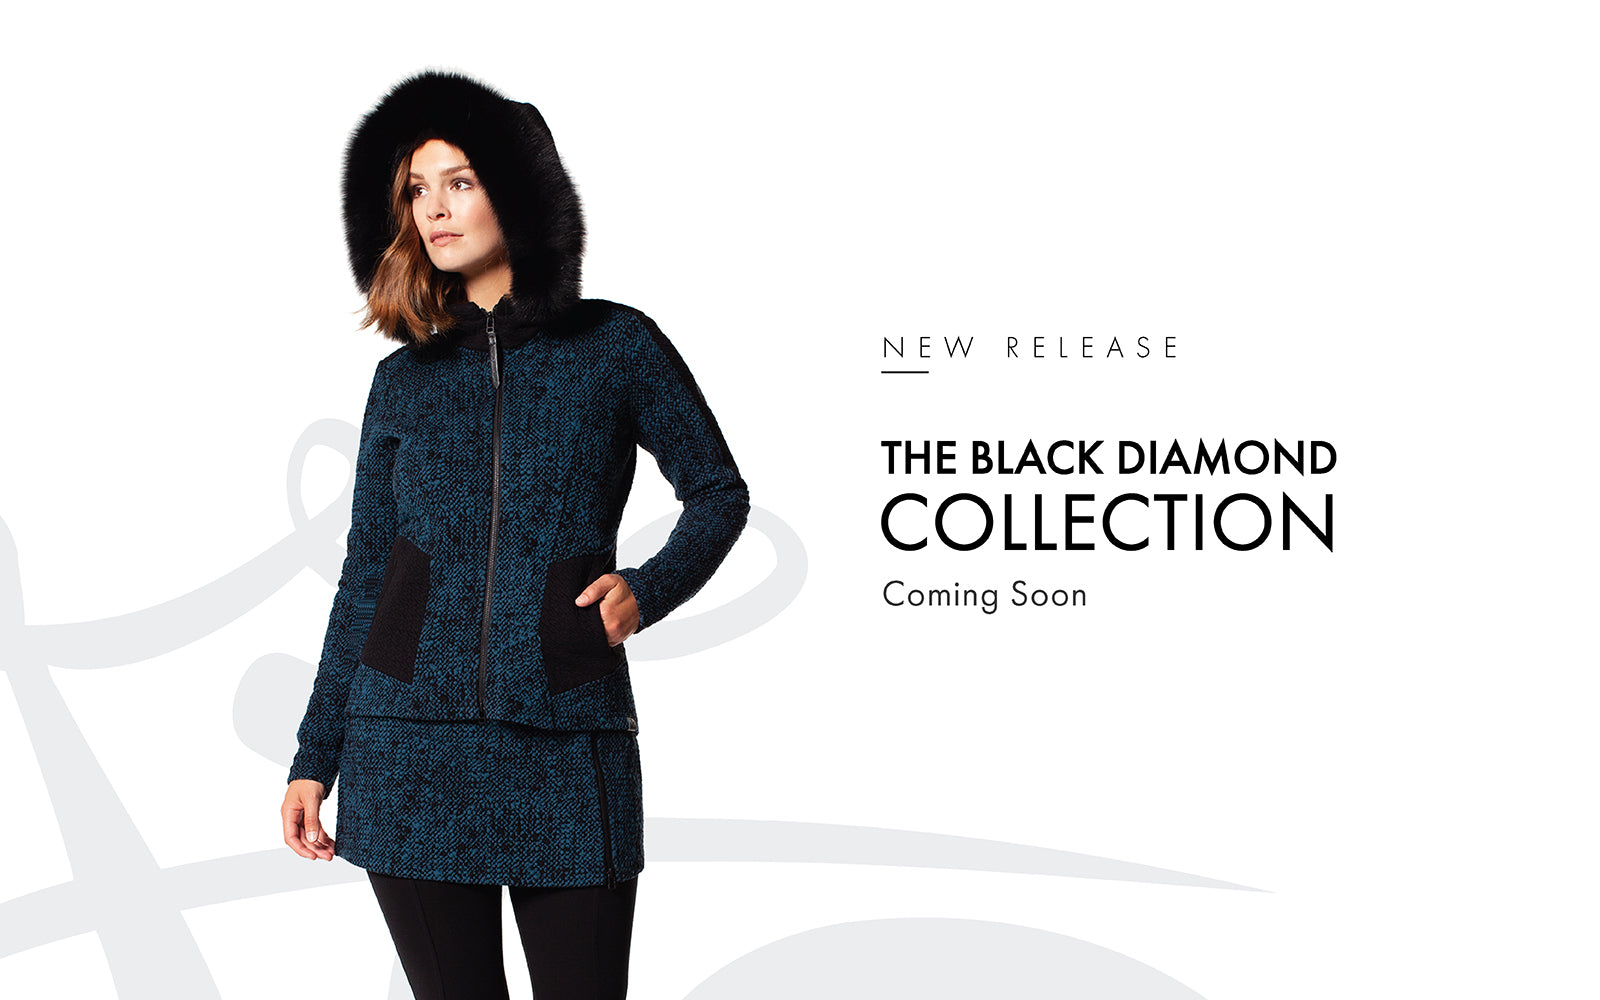 Tonia DeBellis New release: Black Diamond collection coming soon. Perfect clothing for fall and winter seasons ranging from jackets, coats, ski skirts, leggings and more.